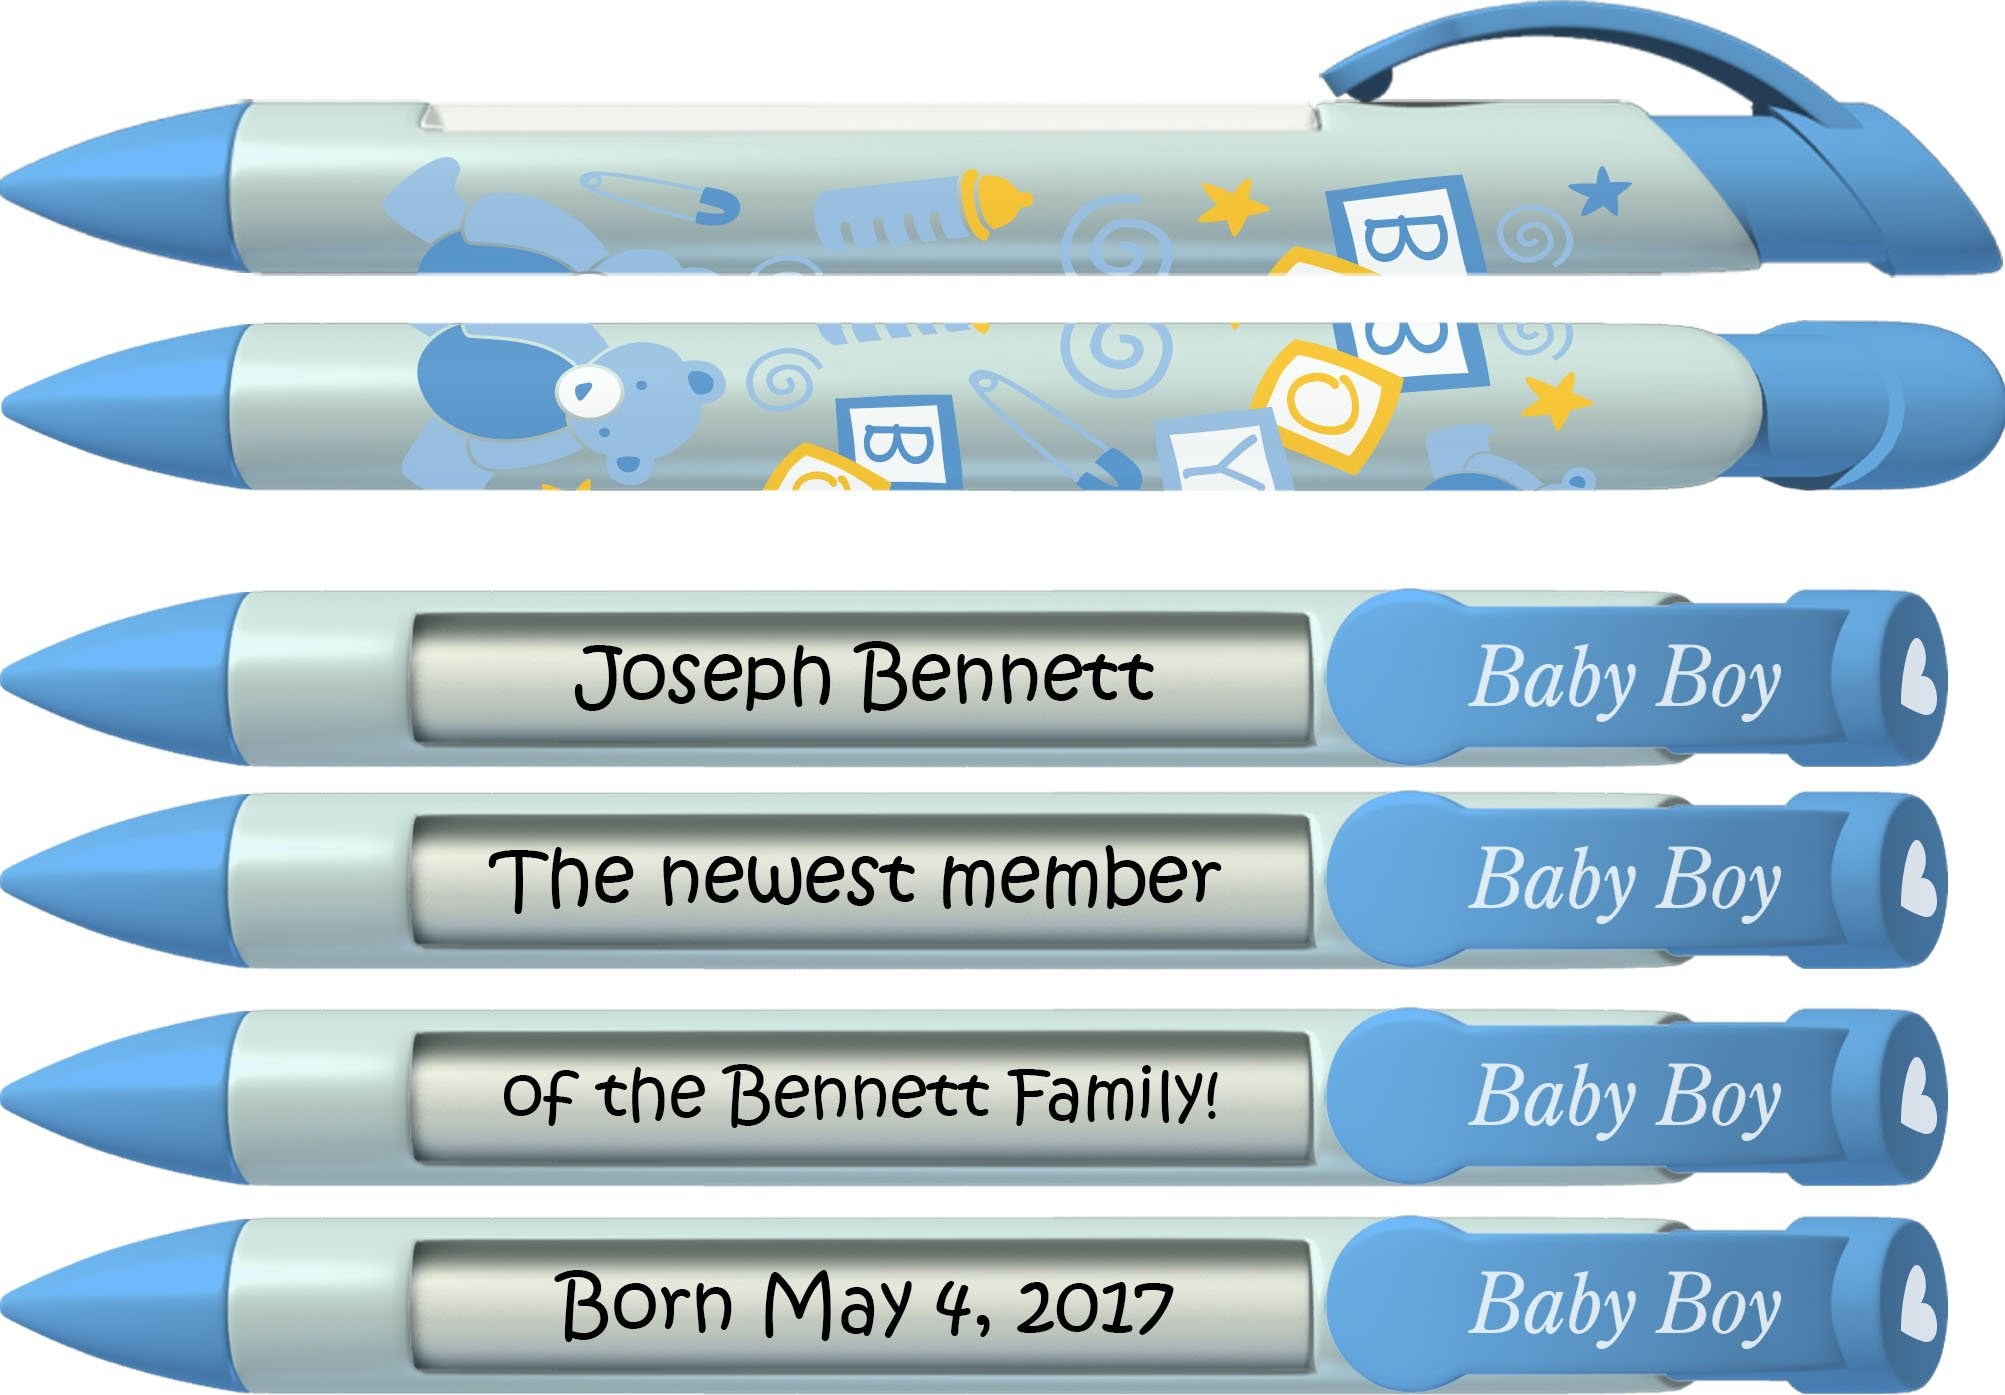 Baby Pen by Greeting Pen- Personalized Baby Shower Favor / Invitation and Birth Annoucement Pens - Baby Boy Blocks Rotating Message Pen 50 pack (P-BP-21-50) by Greeting Pen (Image #2)